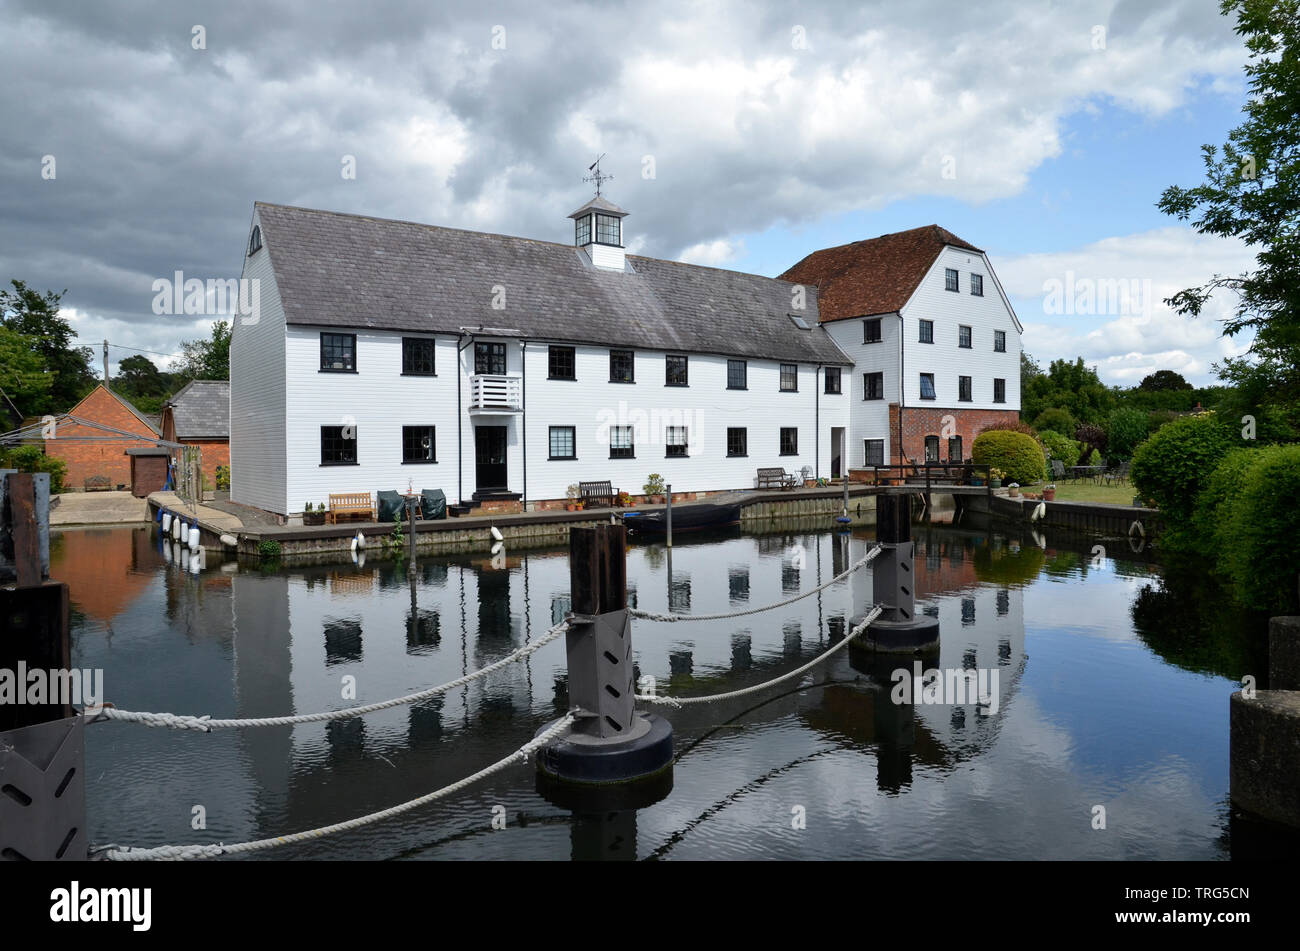 Hambleden Mill, a mill and river weir complex on the River Thames on the Buckinghamshire/Berkshire border near Henley. - Stock Image